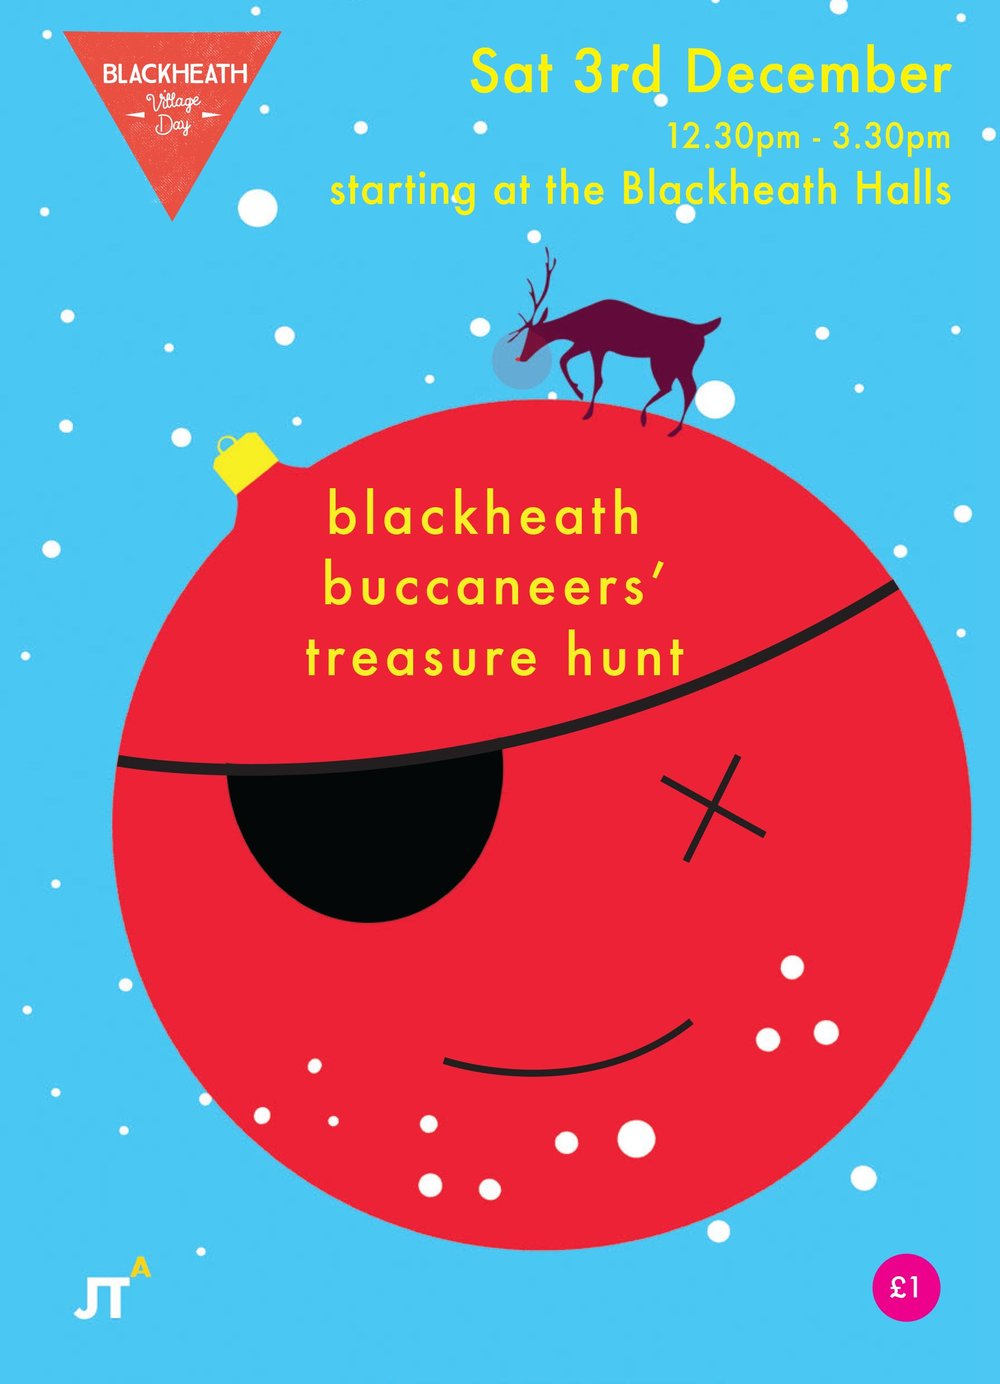 JTA are proud to announce that we will be running our spectacular Village Day treasure hunt for the third year in a row! See you on the 3rd December from 12.30pm!